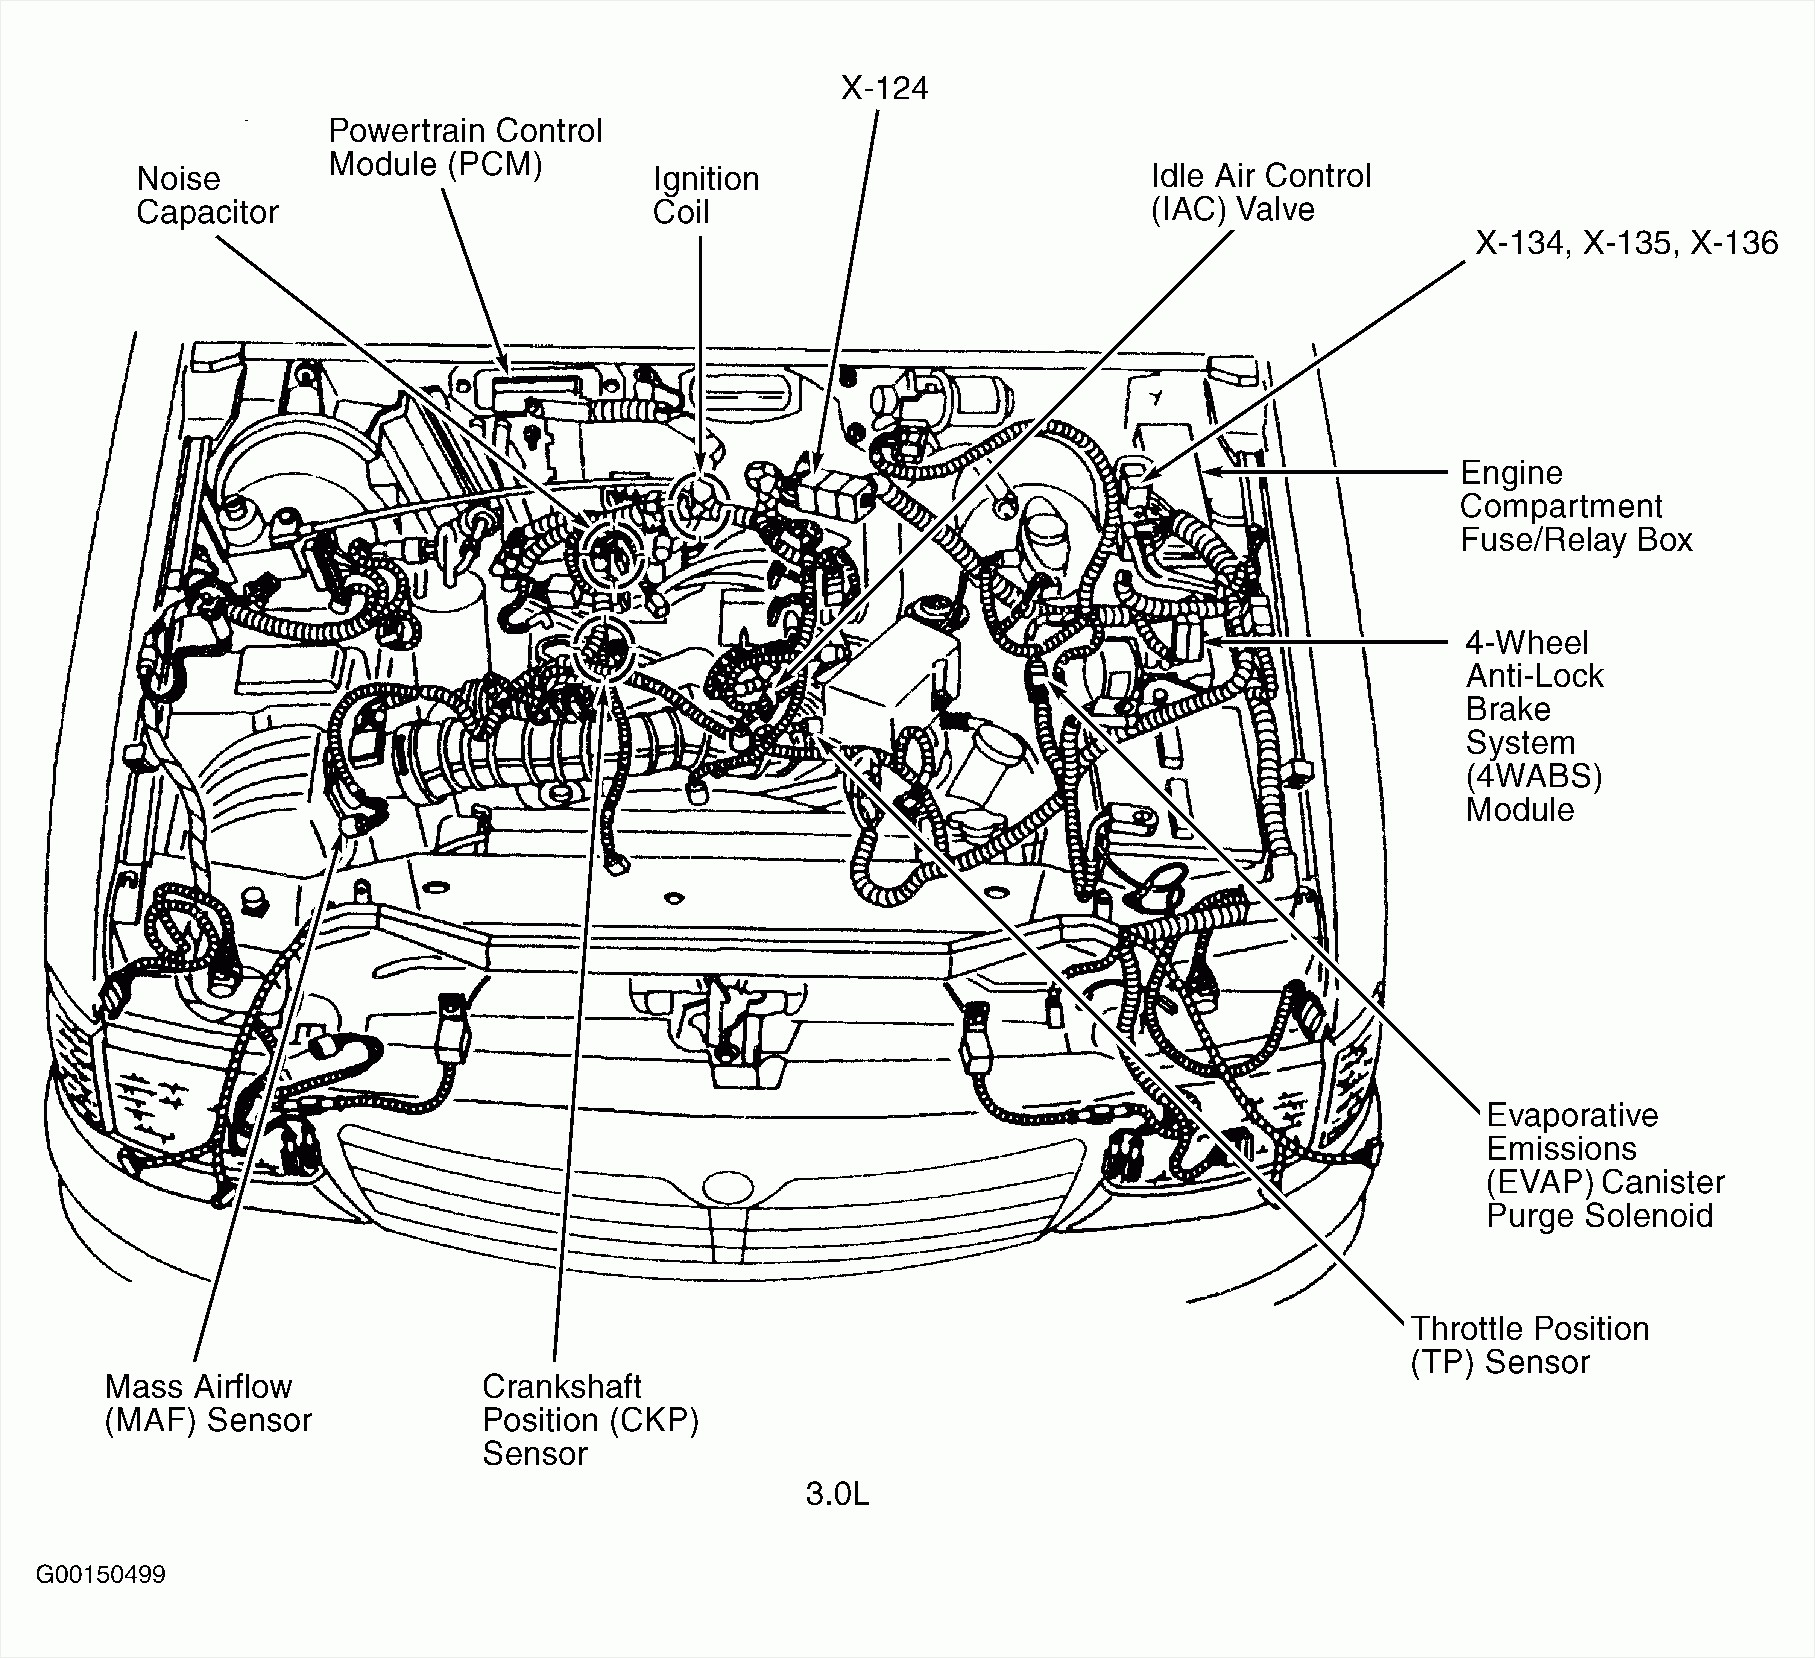 2002 Mitsubishi Lancer Manual Transmission besides Coyote Engine Diagram Belt likewise P 0996b43f8036e1bd likewise Ford F Truck Enthusiasts Forums Ke Diagrams additionally Btford461. on 04 explorer timing chain diagram